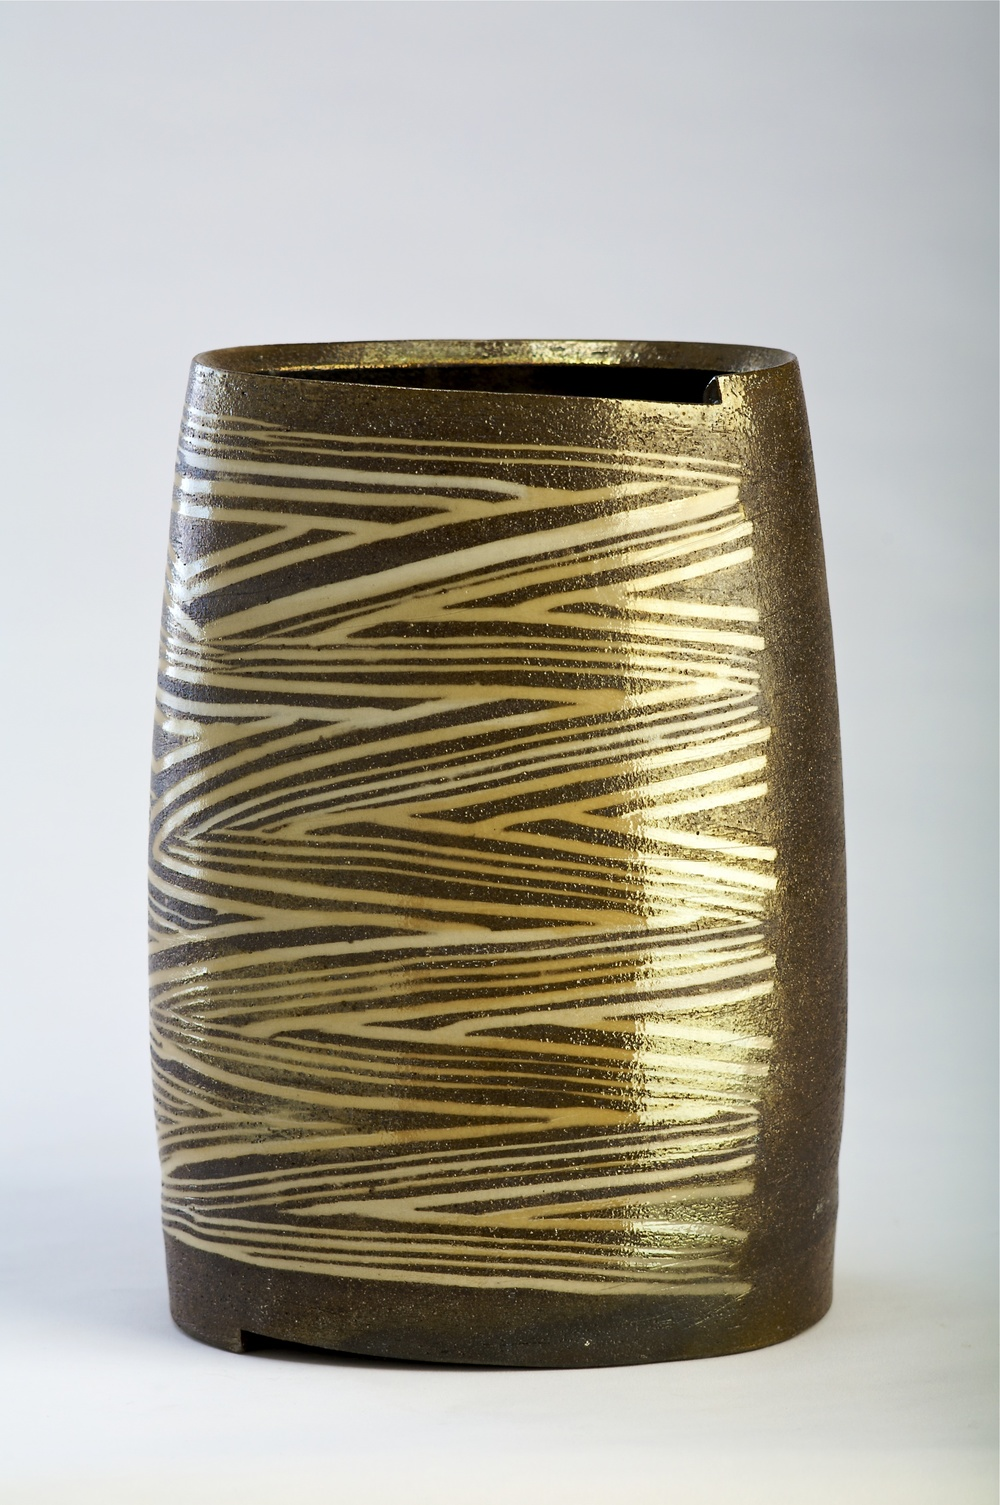 Thrown altered and cut ovoid form.  incised pattern with Inlaid slip.  Sagger fired with charcoal and granite luster glaze  350mm H  2009